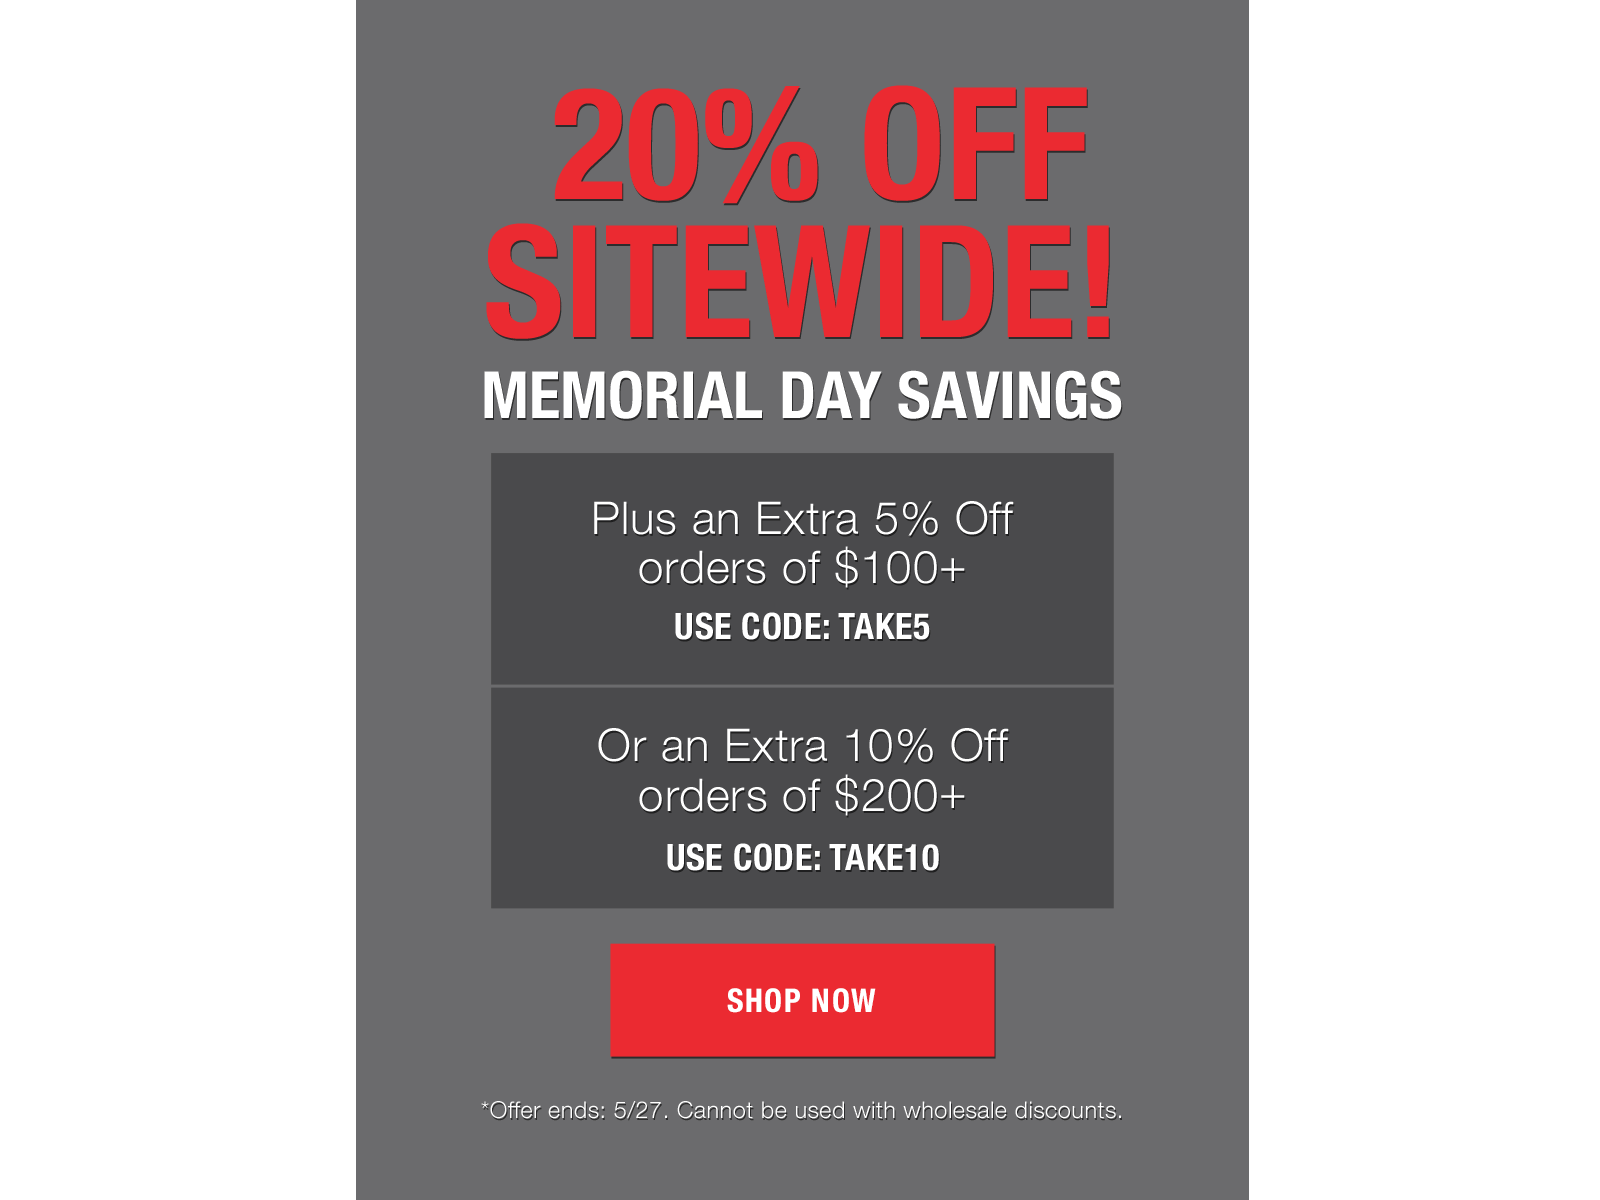 20% off sitewide + an extra 5% off $100+ with code TAKE5 or extra 10% off $200+ with code TAKE10